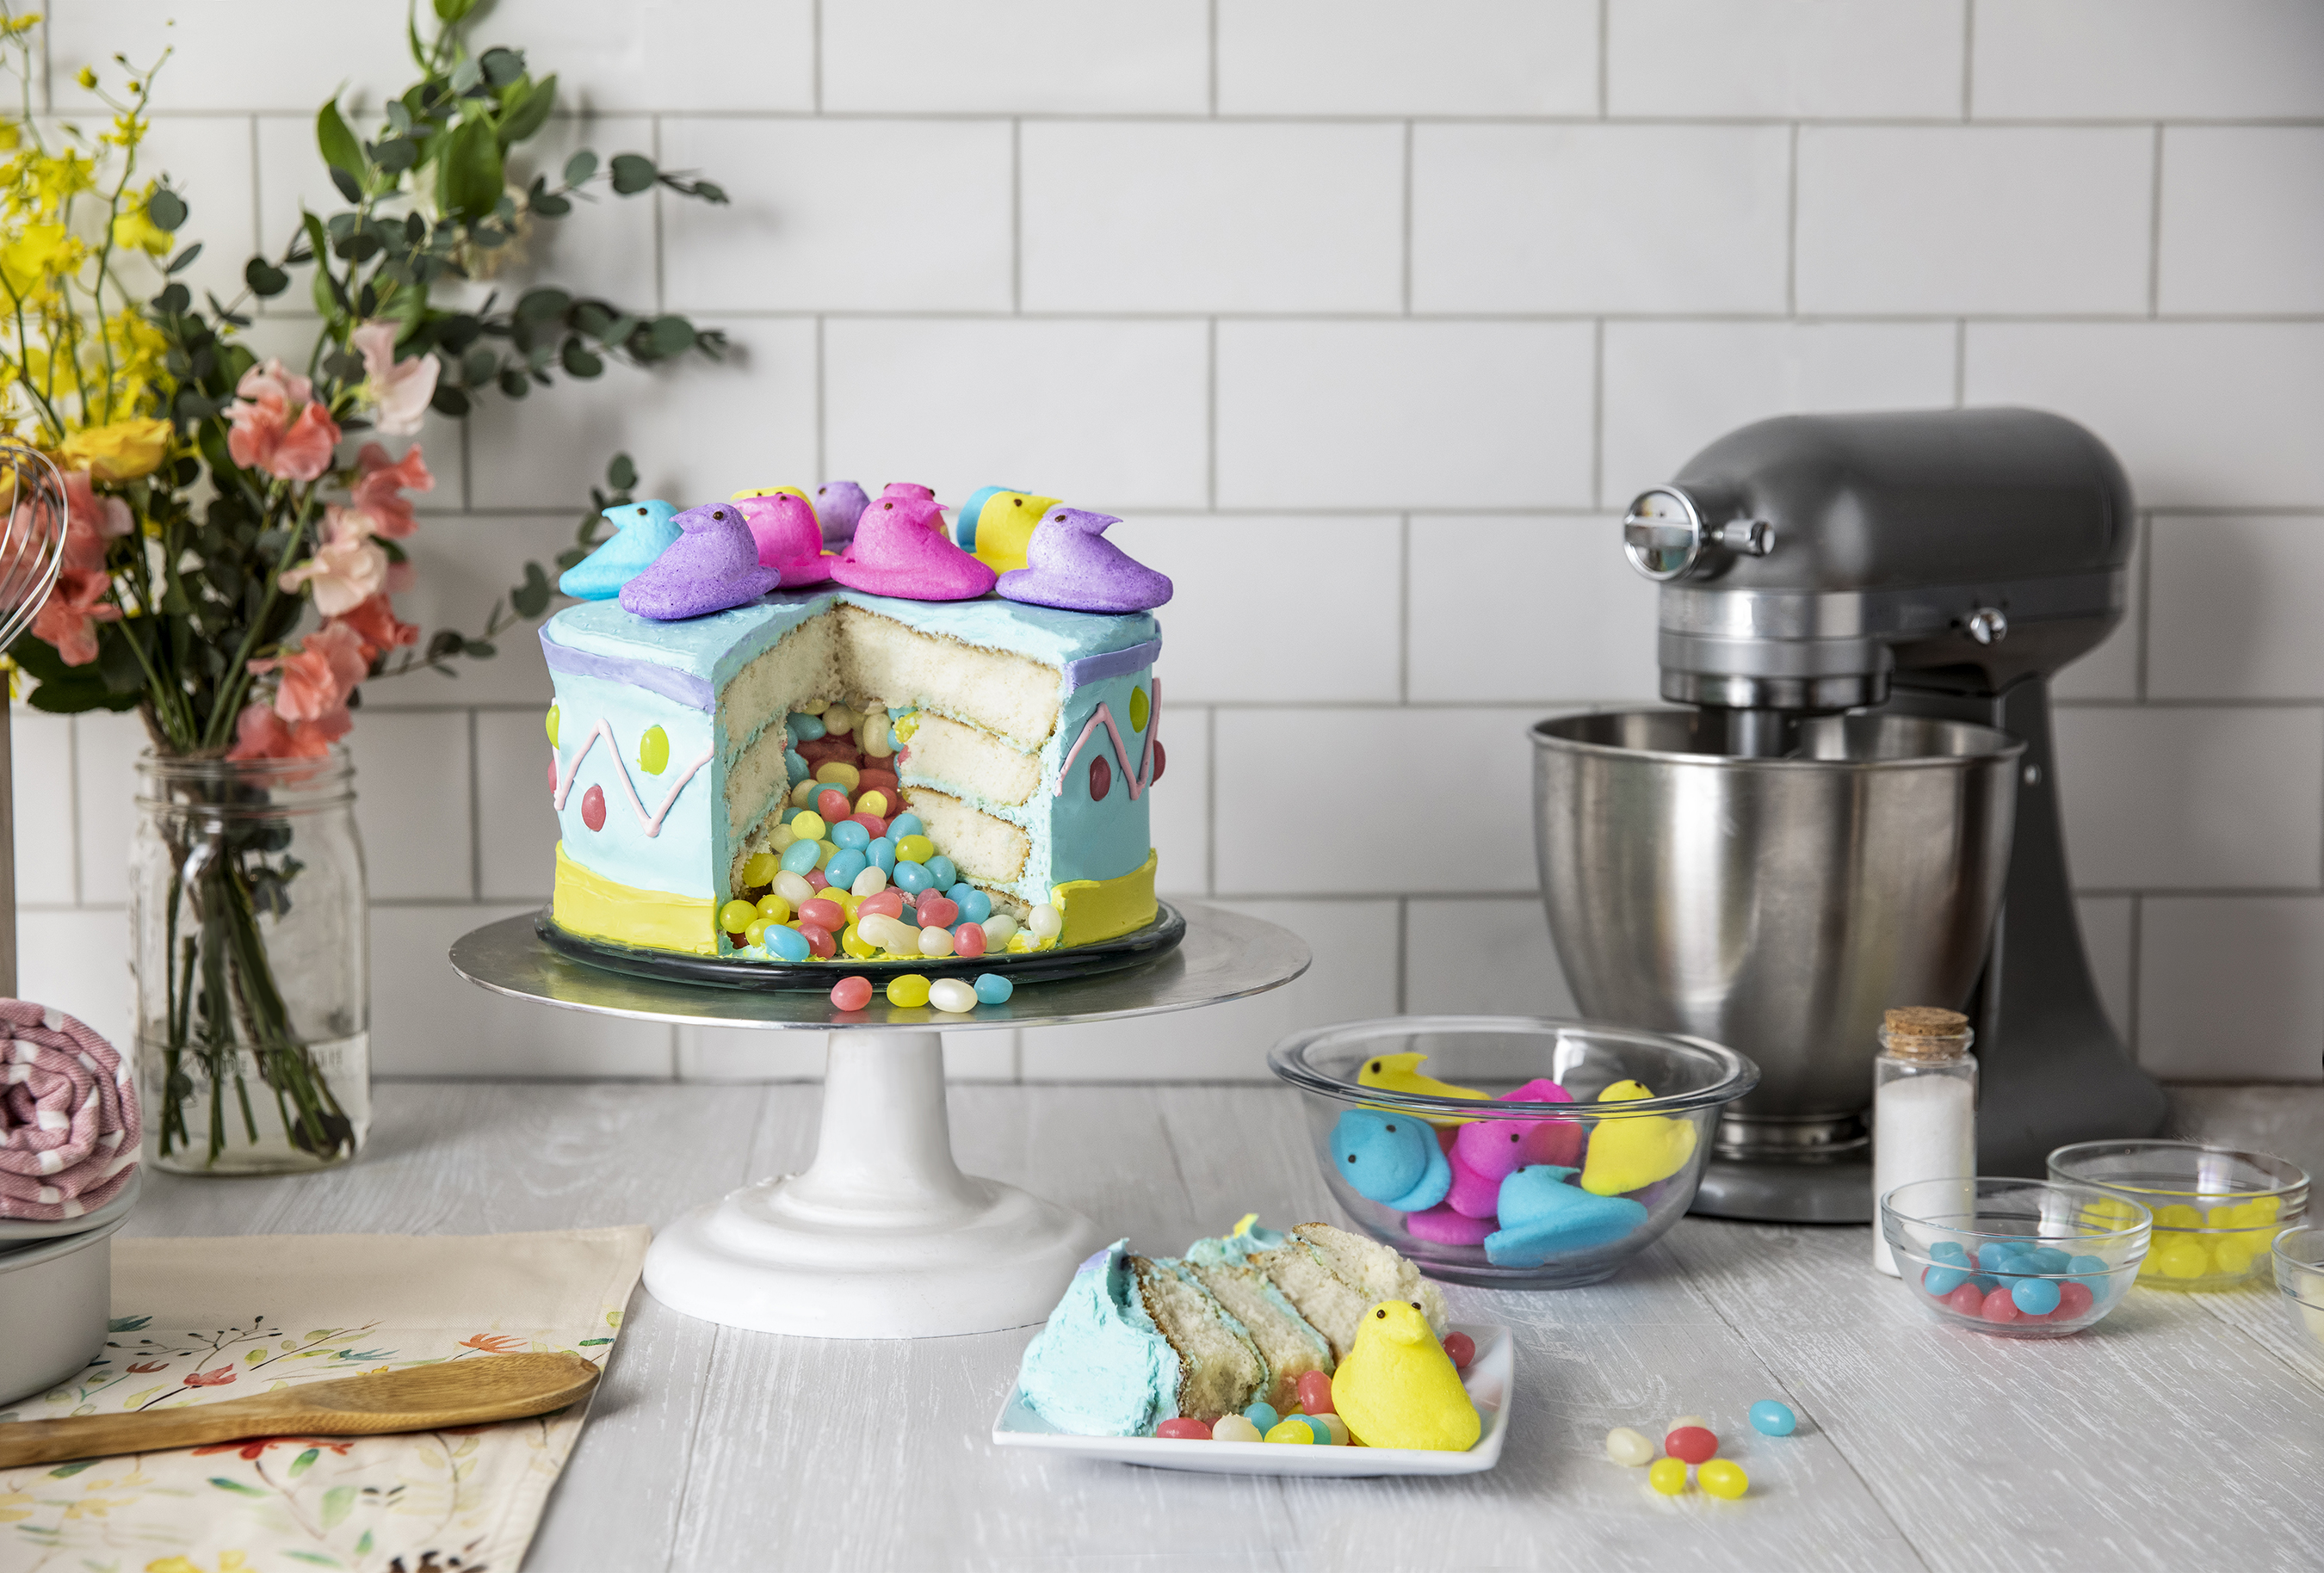 The PEEPS® Piñata Cake is one of many tasty PEEPS® Duncan Hines recipe collaborations coming this Spring